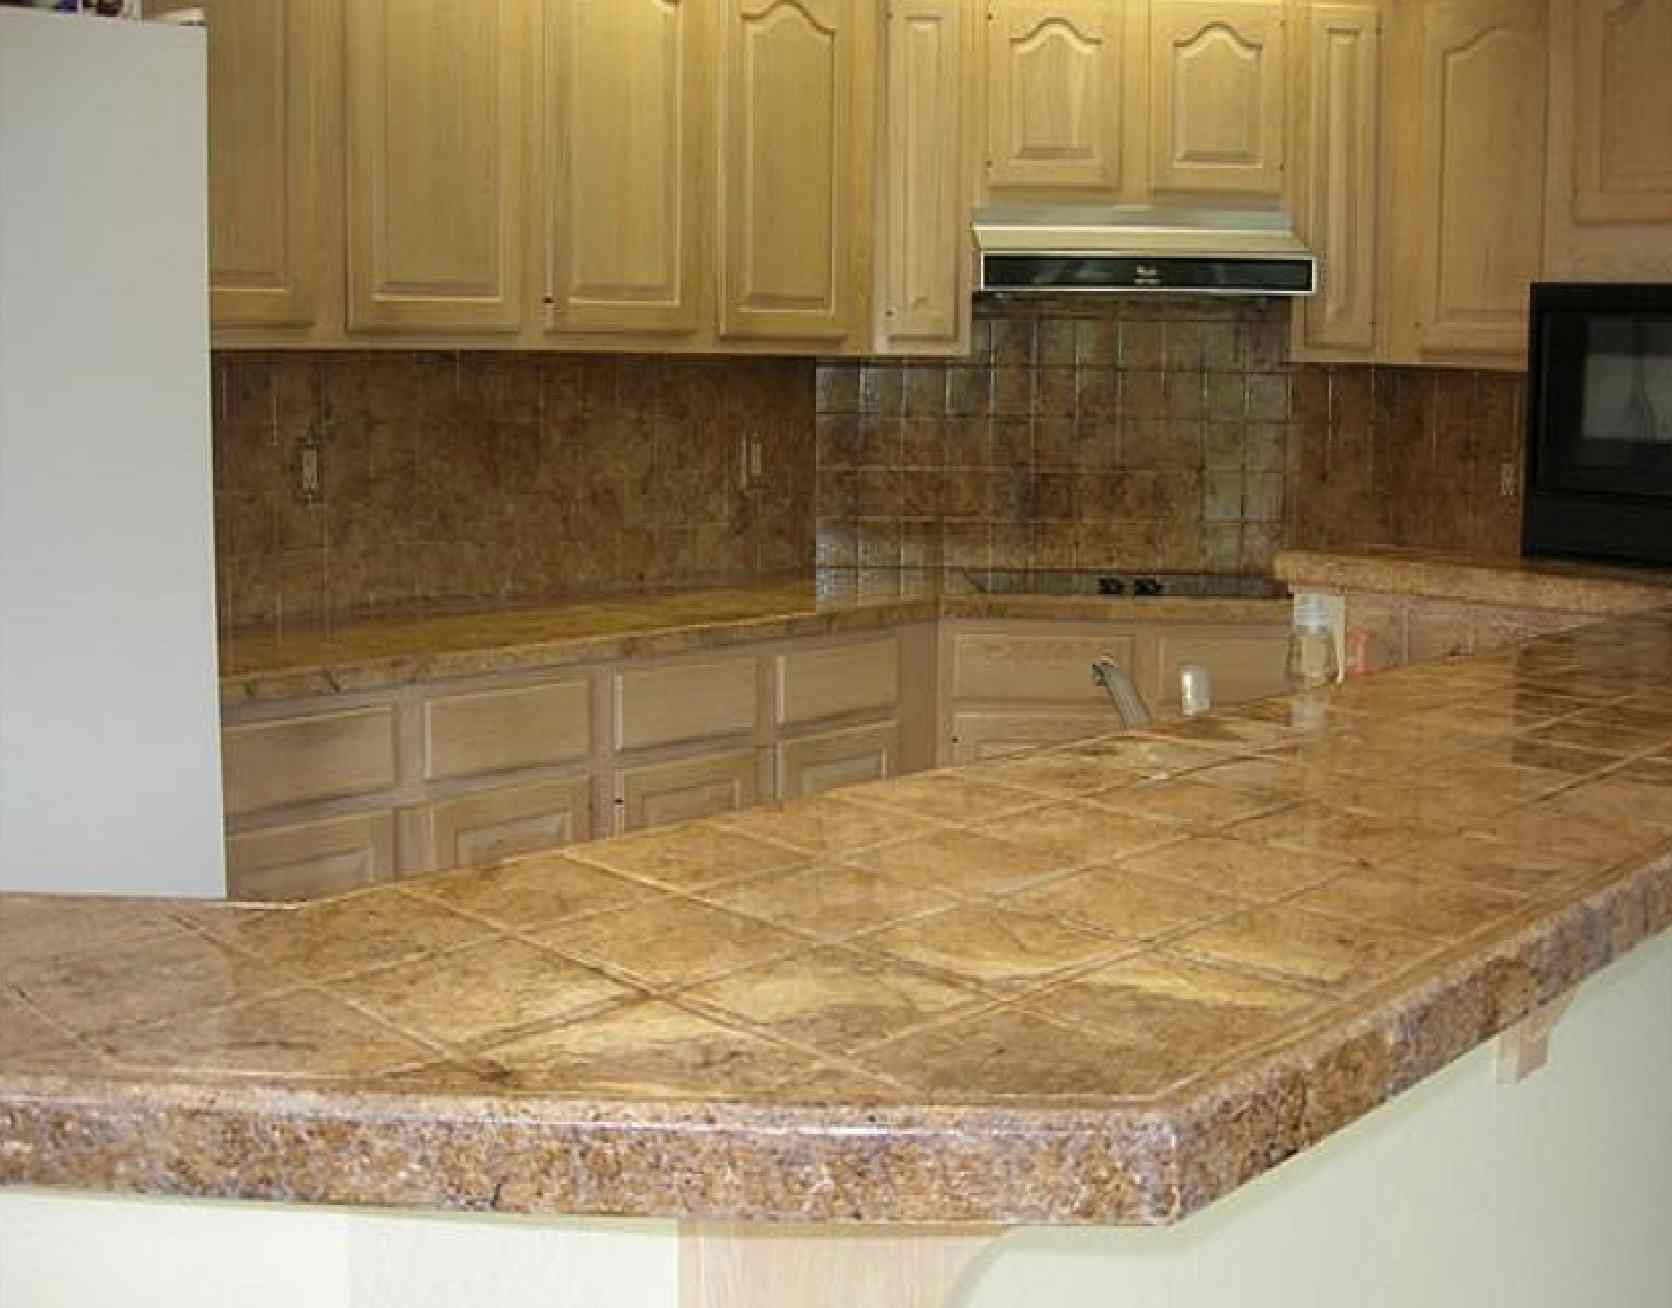 kitchen counter ideas best countertops for kitchen Tile Kitchen Countertop Design